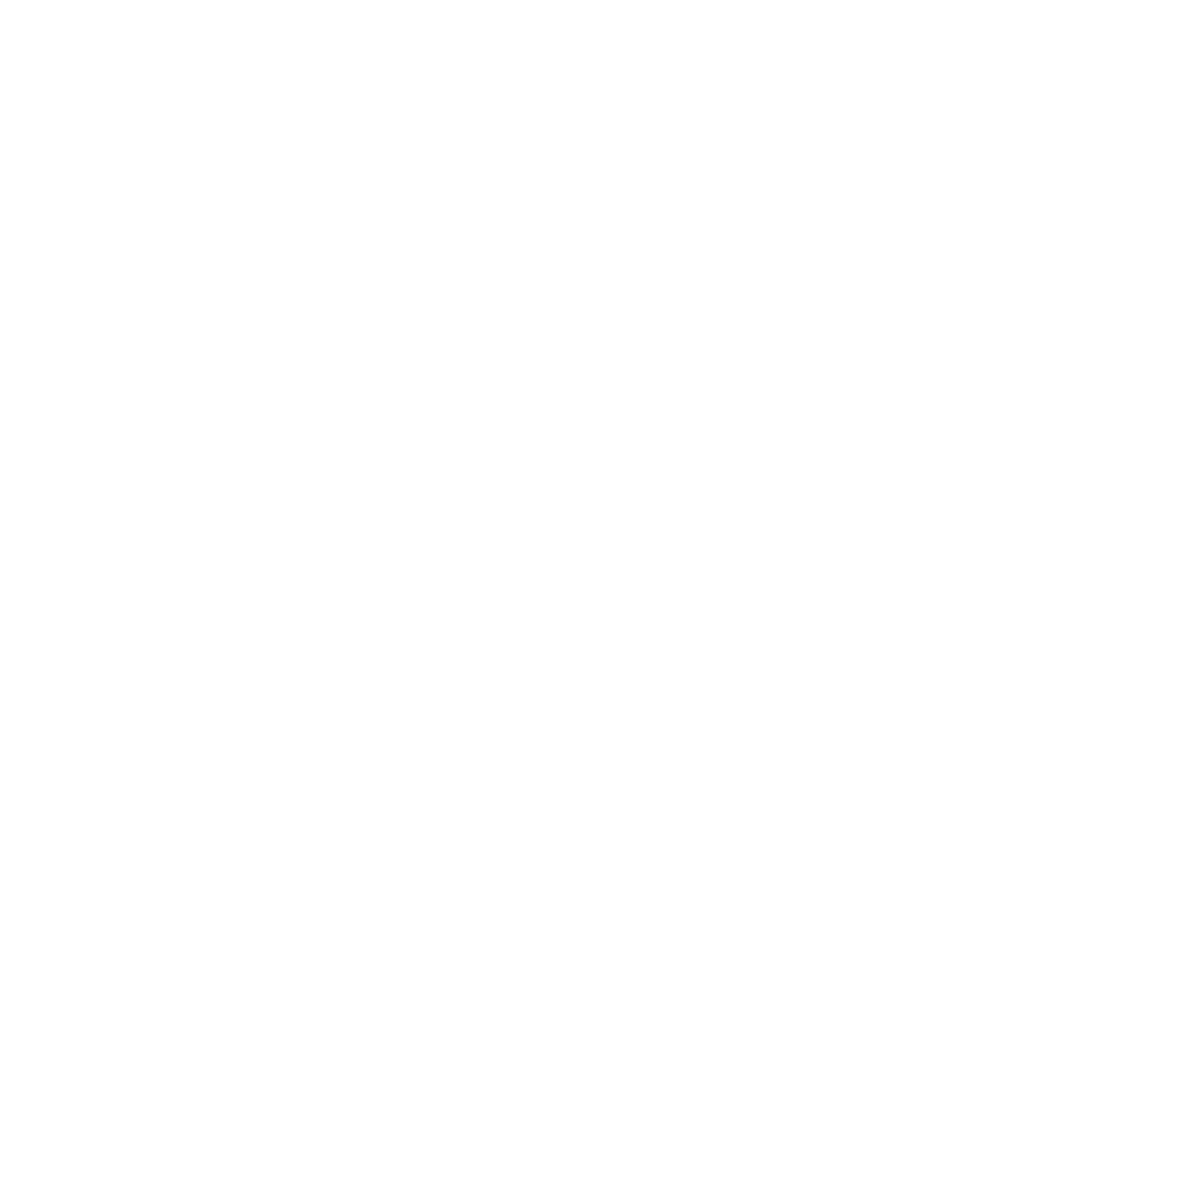 Institute of neurocoaching